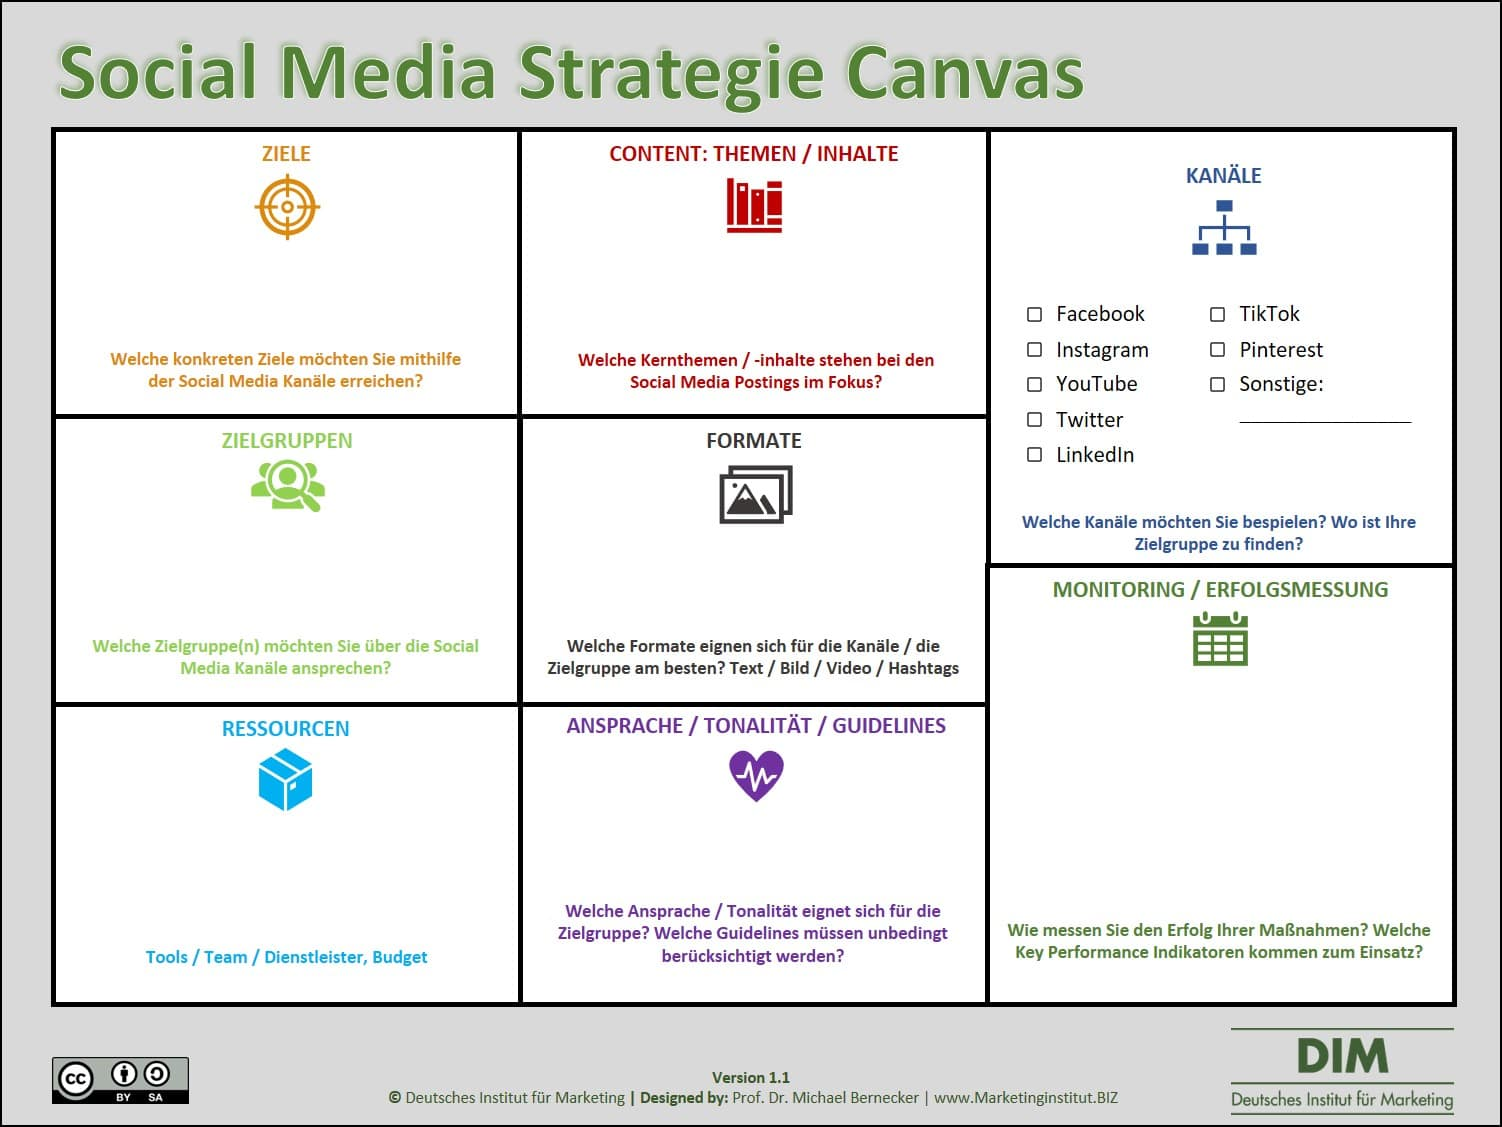 Social Media Strategie Canvas